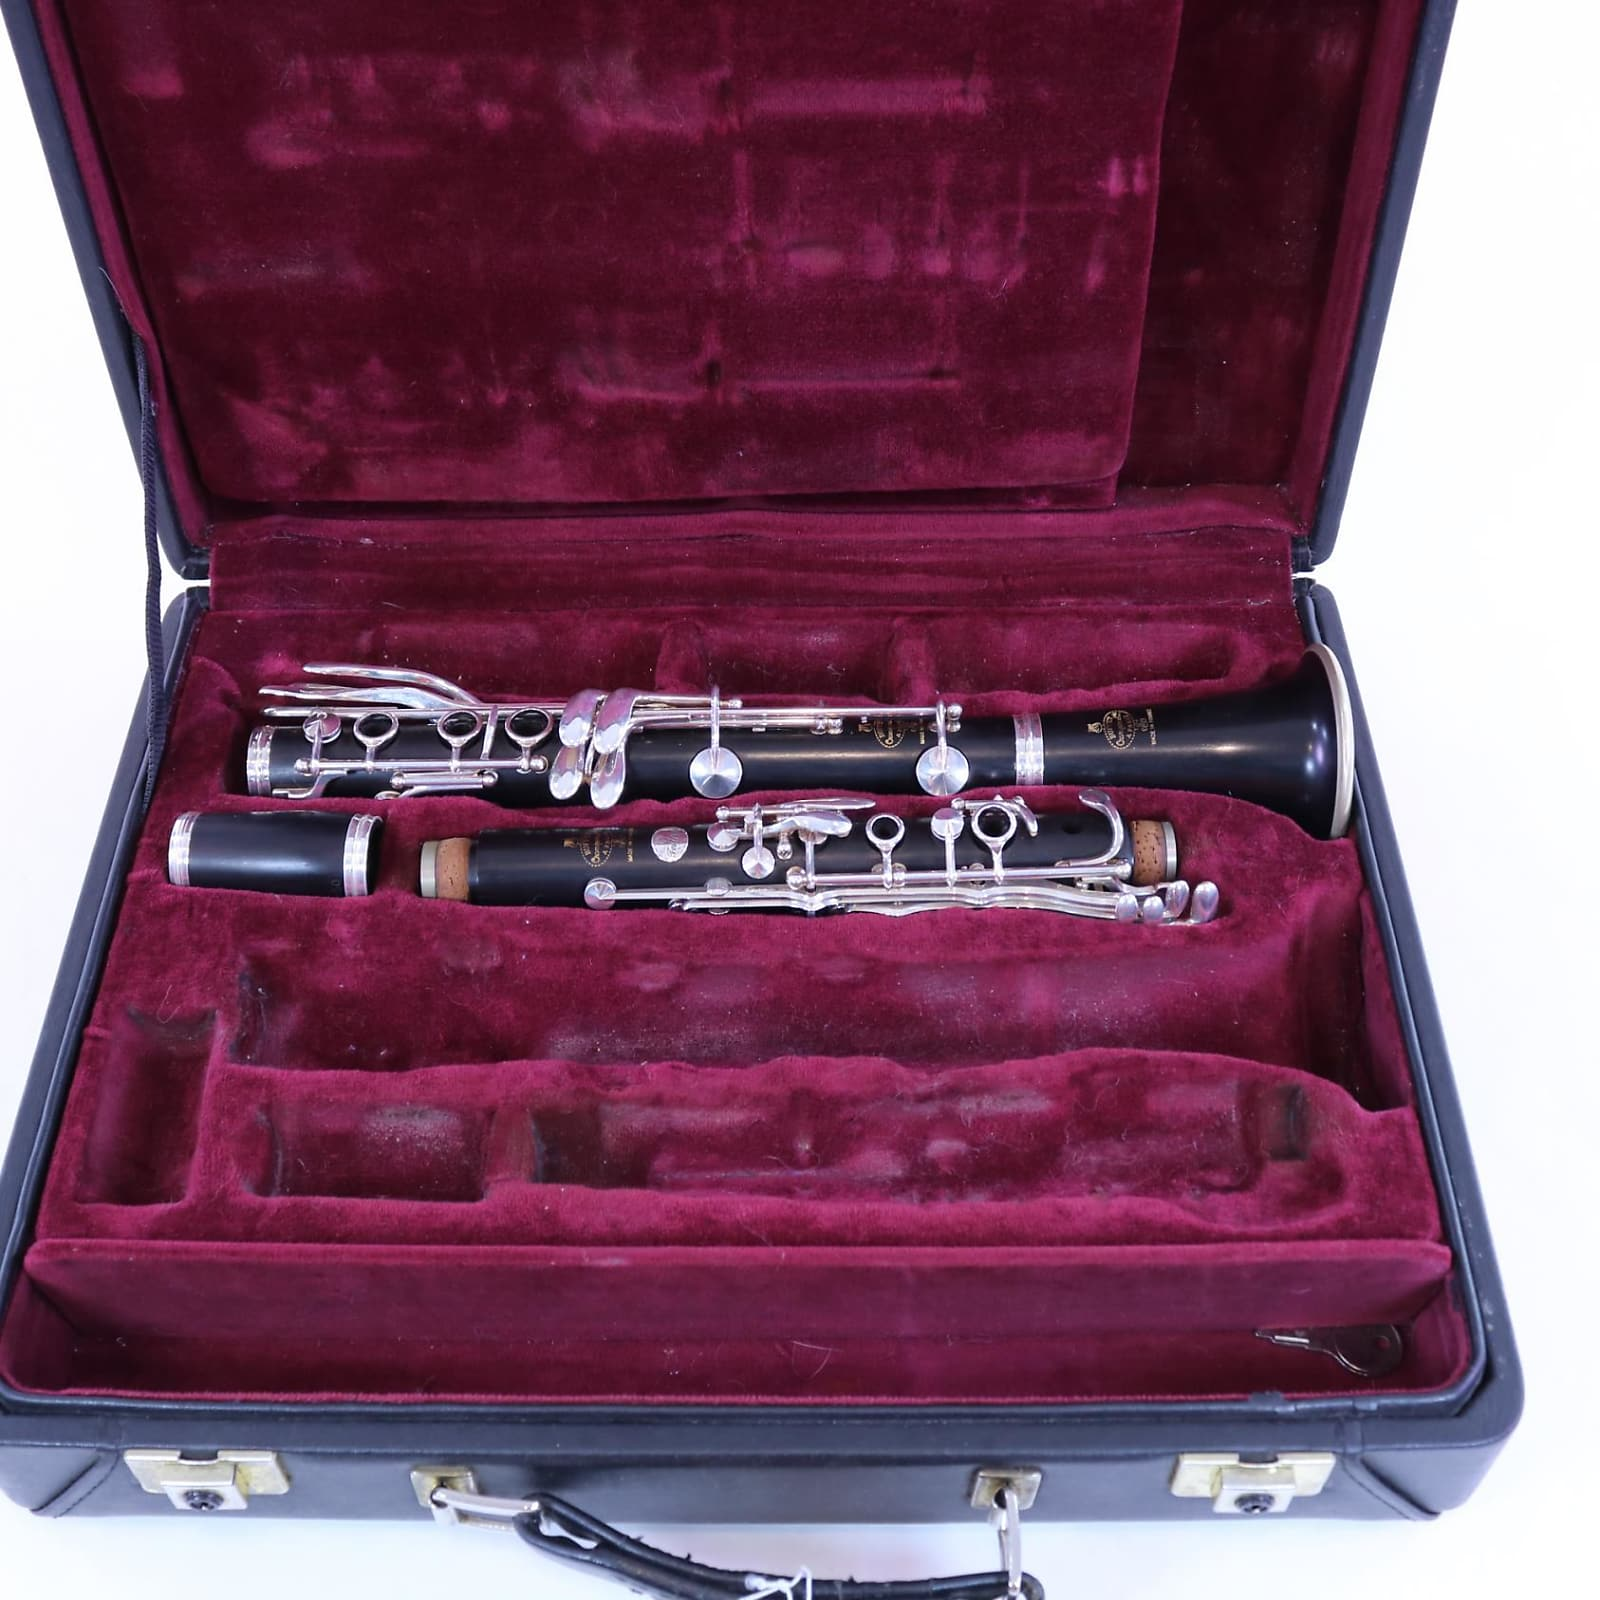 Pleasant Buffet Crampon R 13 Festival Professional A Clarinet Sn 544659 Download Free Architecture Designs Scobabritishbridgeorg